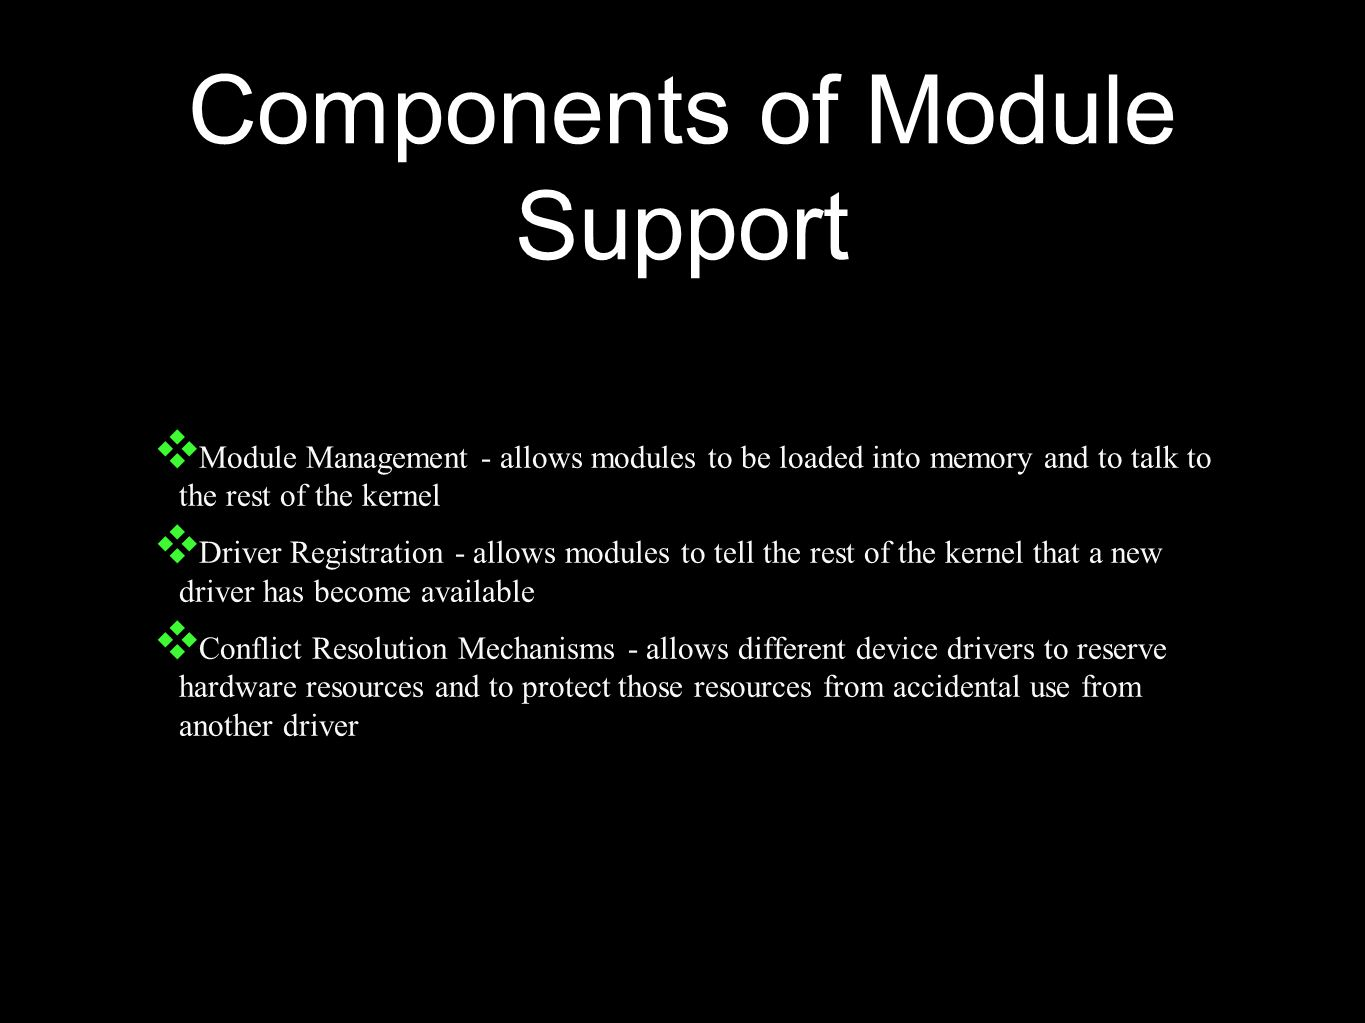 Components of Module Support ❖ Module Management - allows modules to be loaded into memory and to talk to the rest of the kernel ❖ Driver Registration - allows modules to tell the rest of the kernel that a new driver has become available ❖ Conflict Resolution Mechanisms - allows different device drivers to reserve hardware resources and to protect those resources from accidental use from another driver